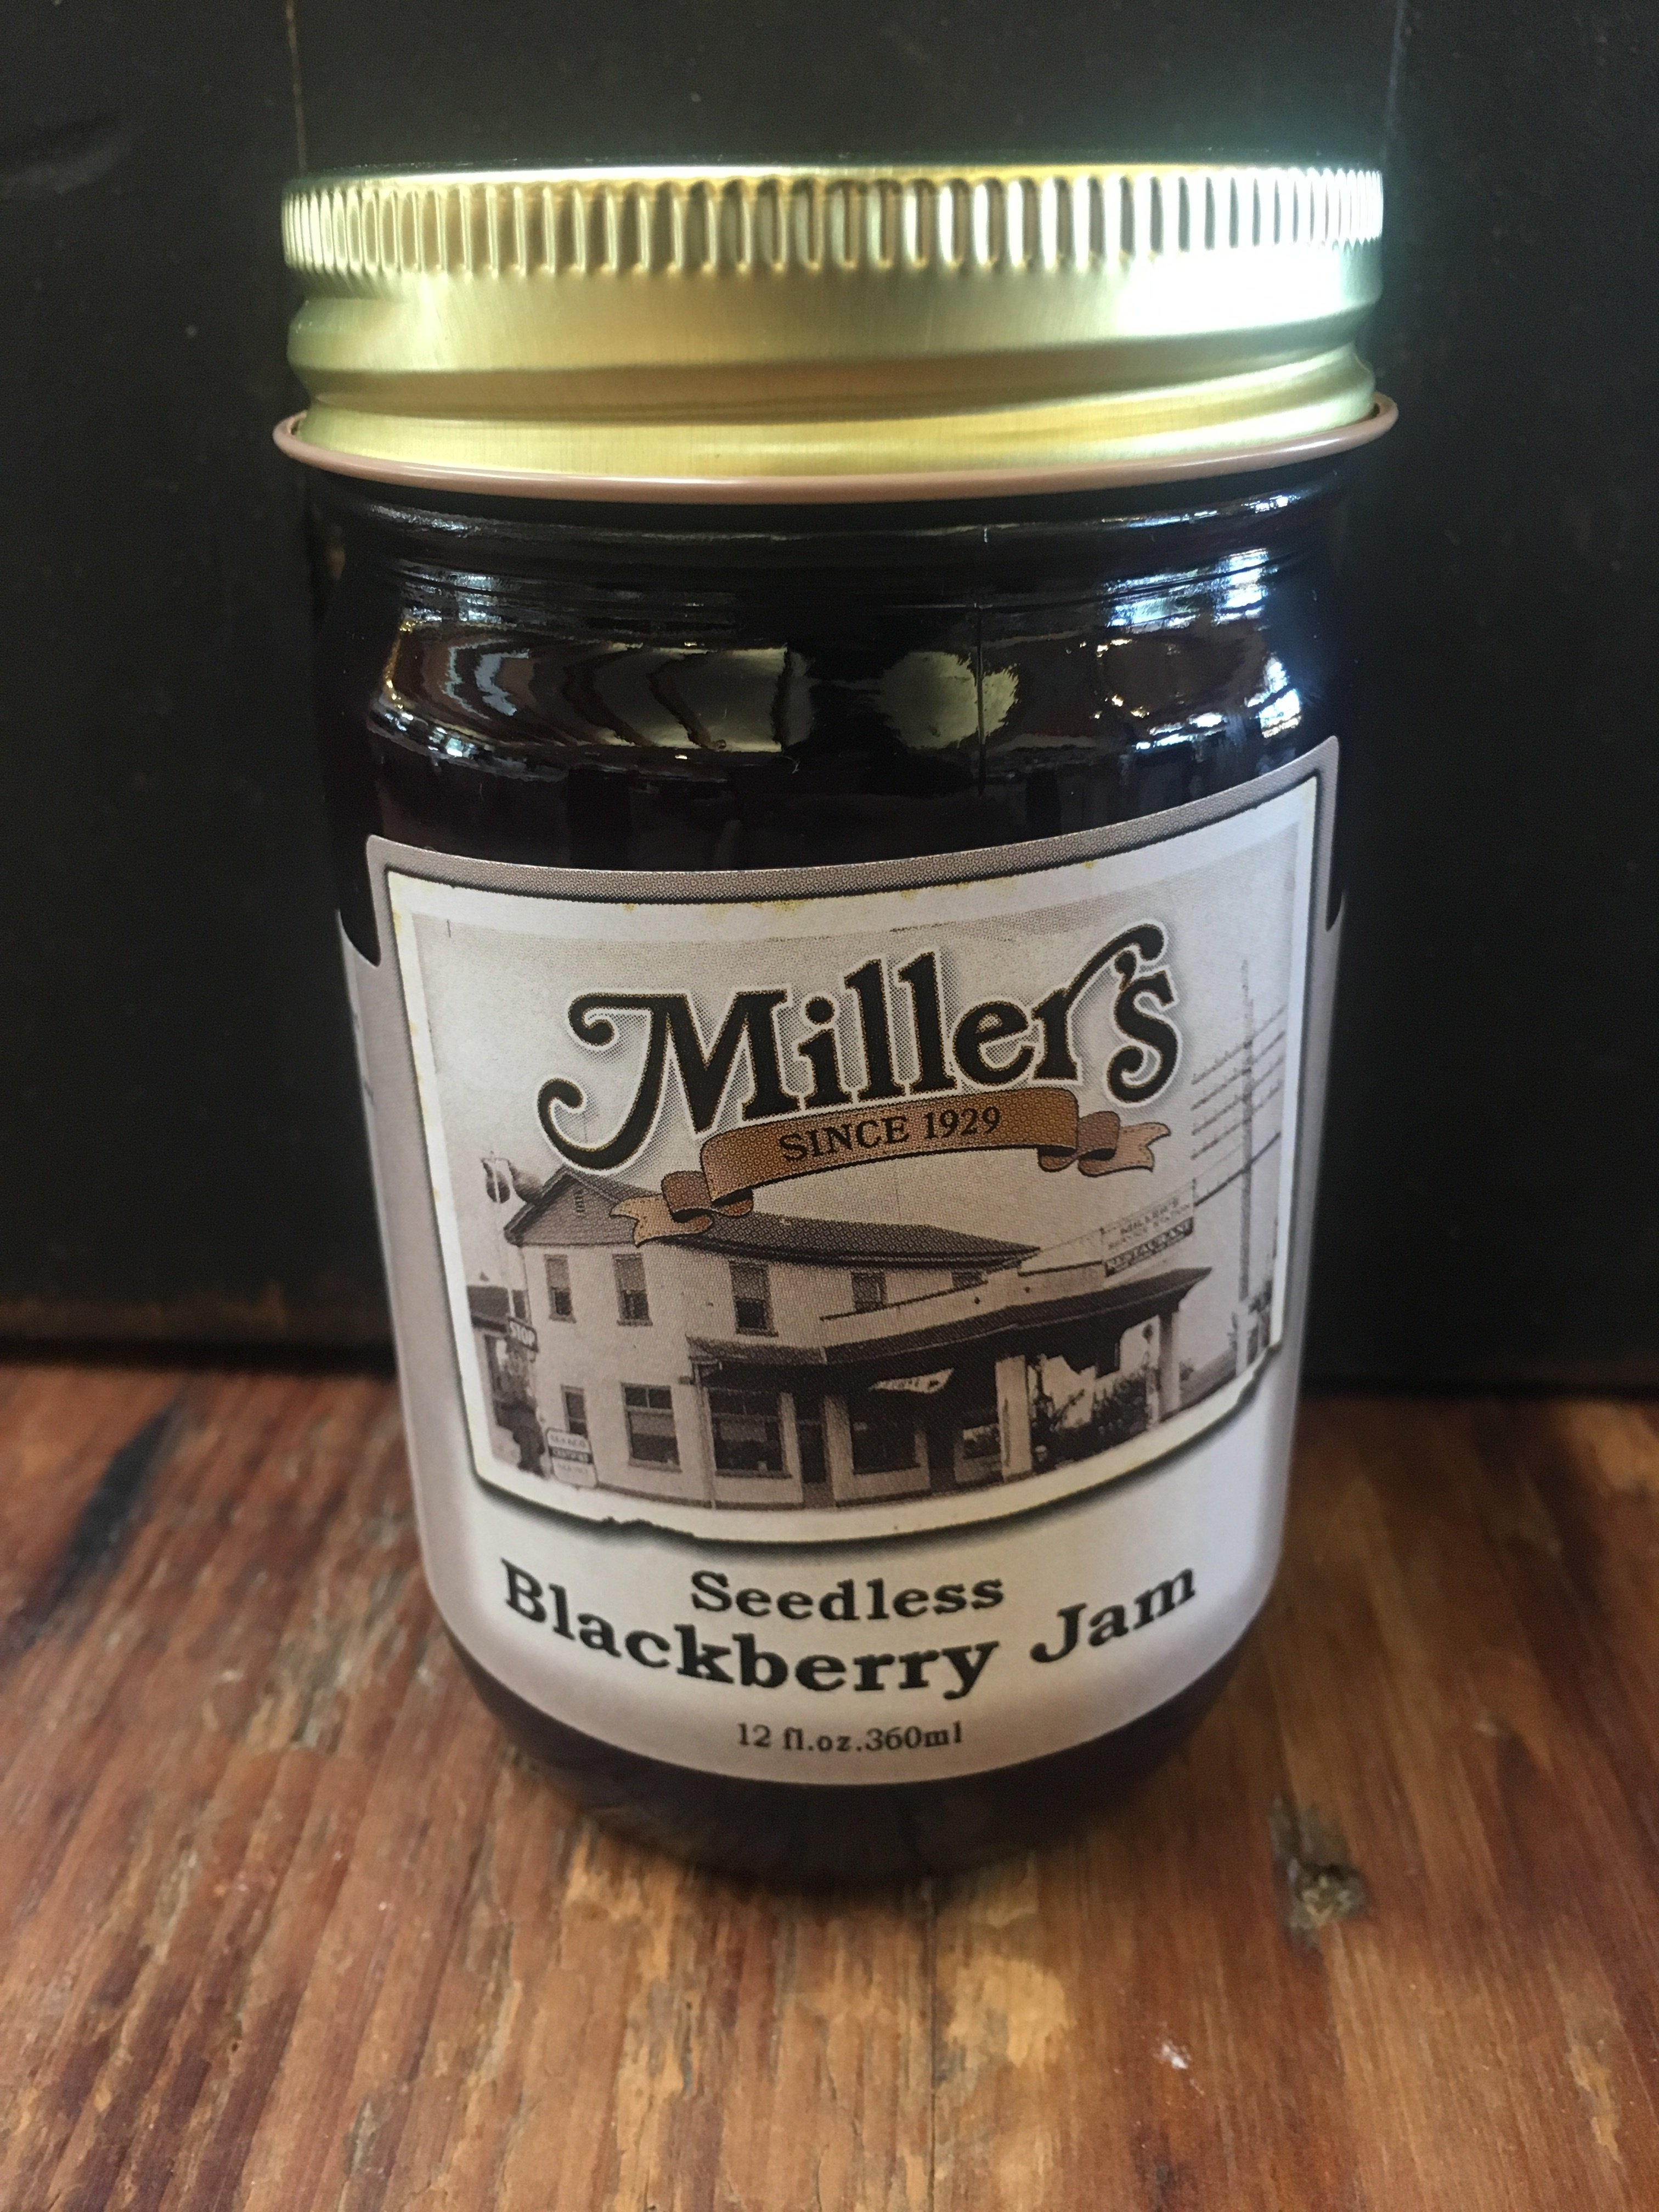 Seedless Blackberry Jam 12oz 673166025233